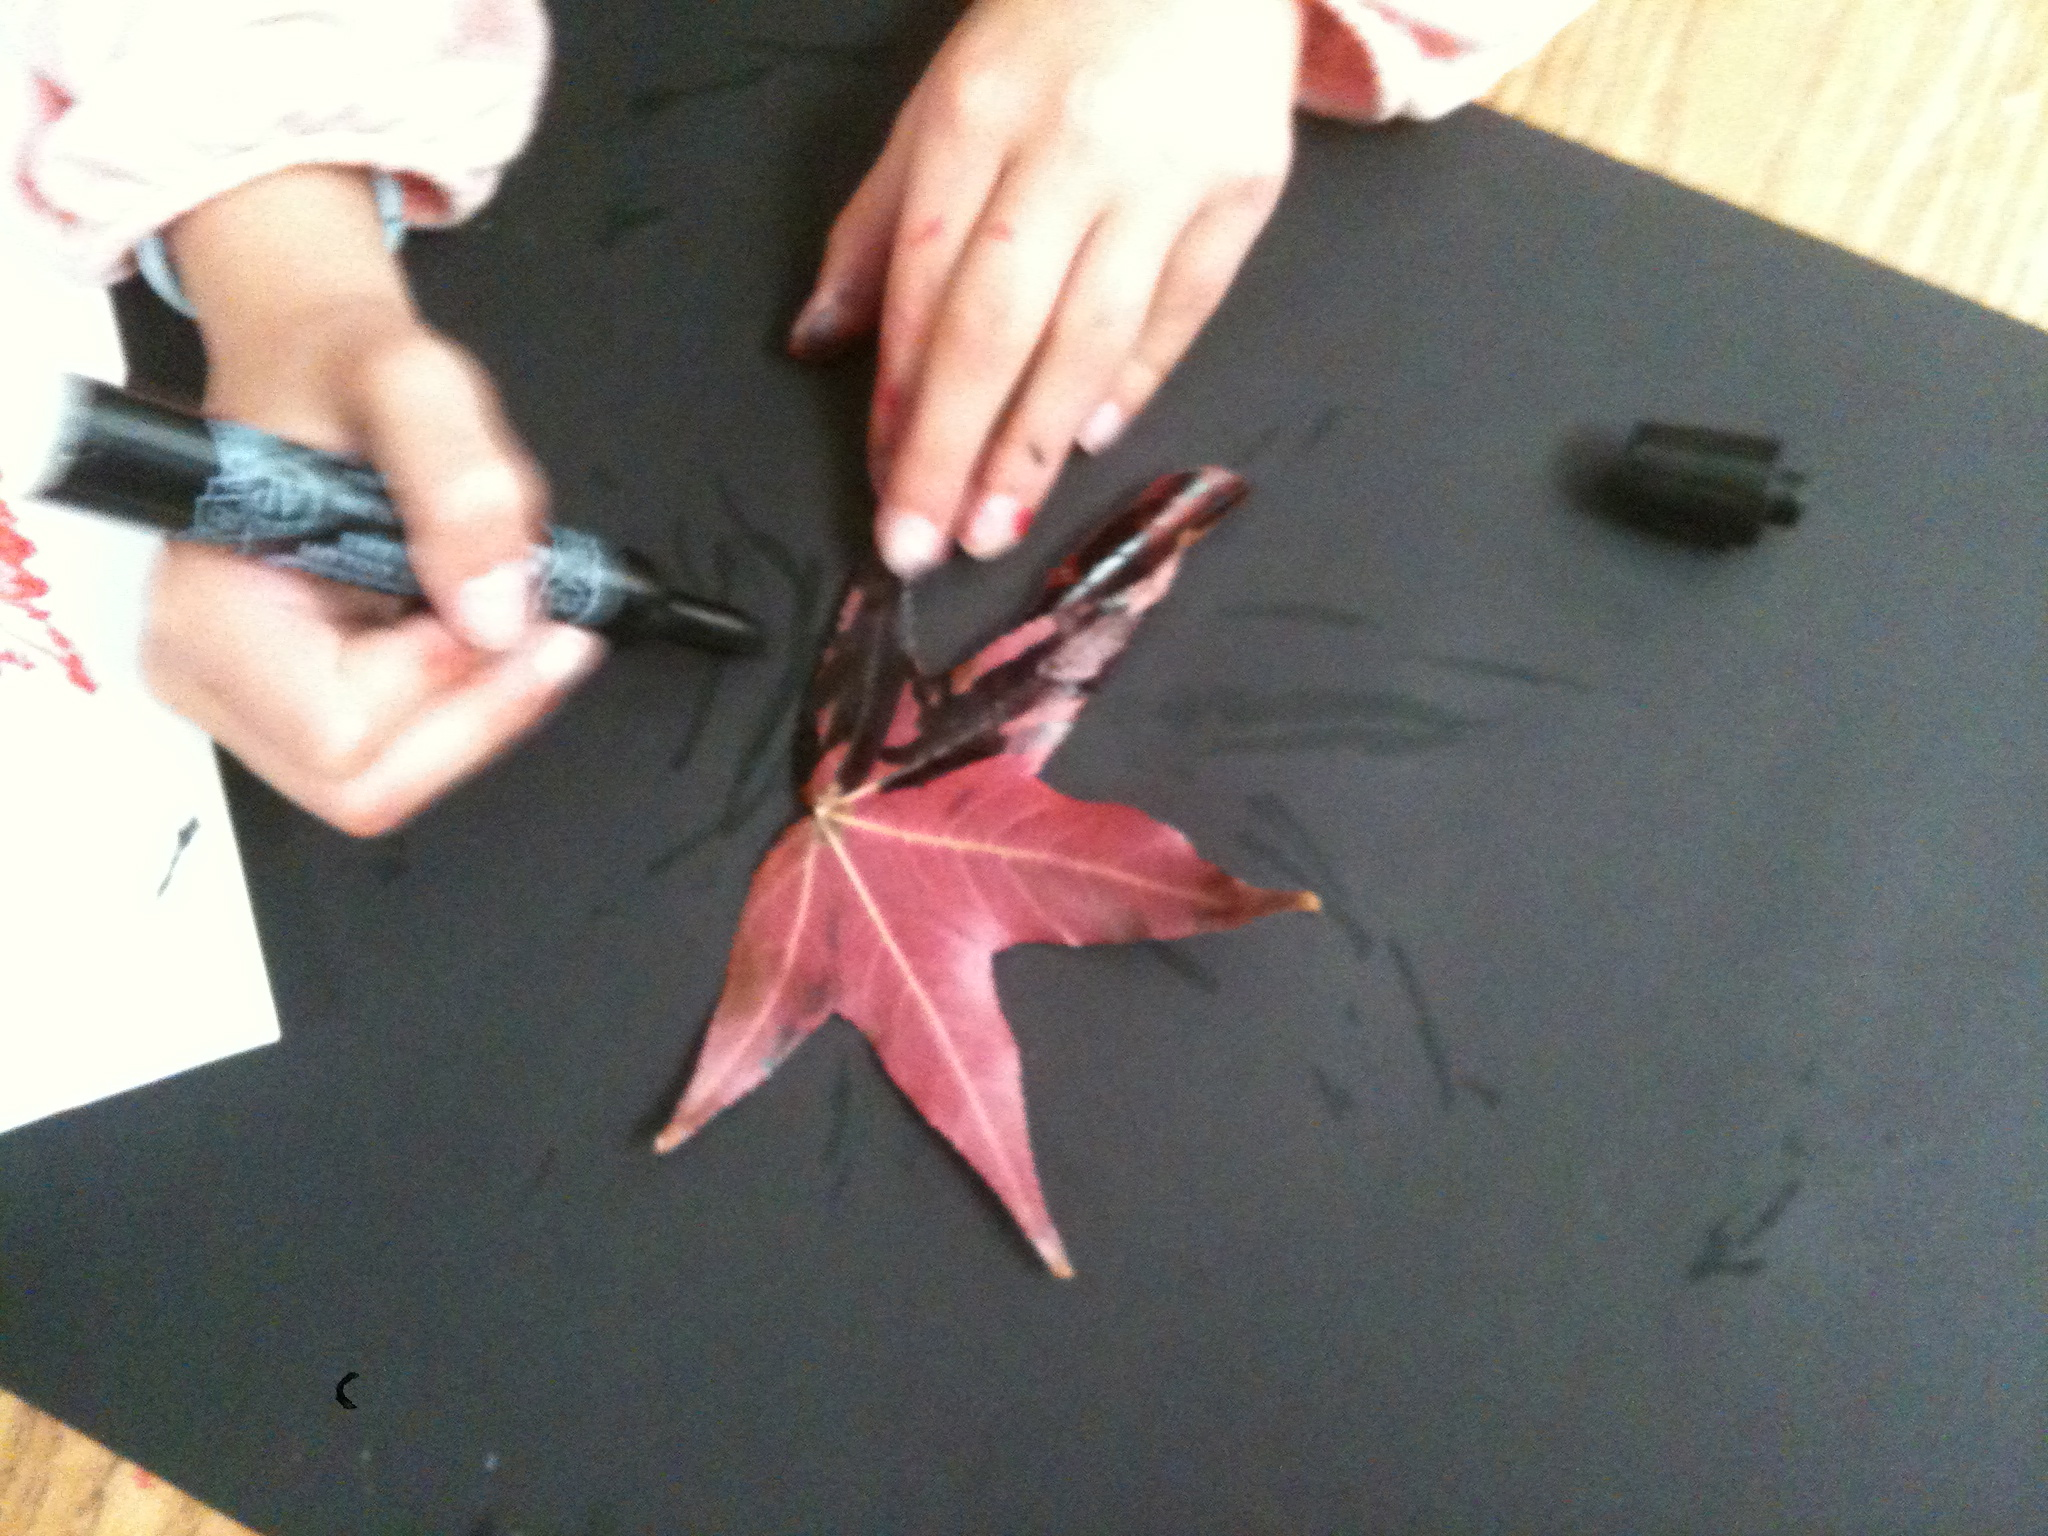 Inking the leaf with black marker. Be sure to ink the 'veiny' side of the leaf!